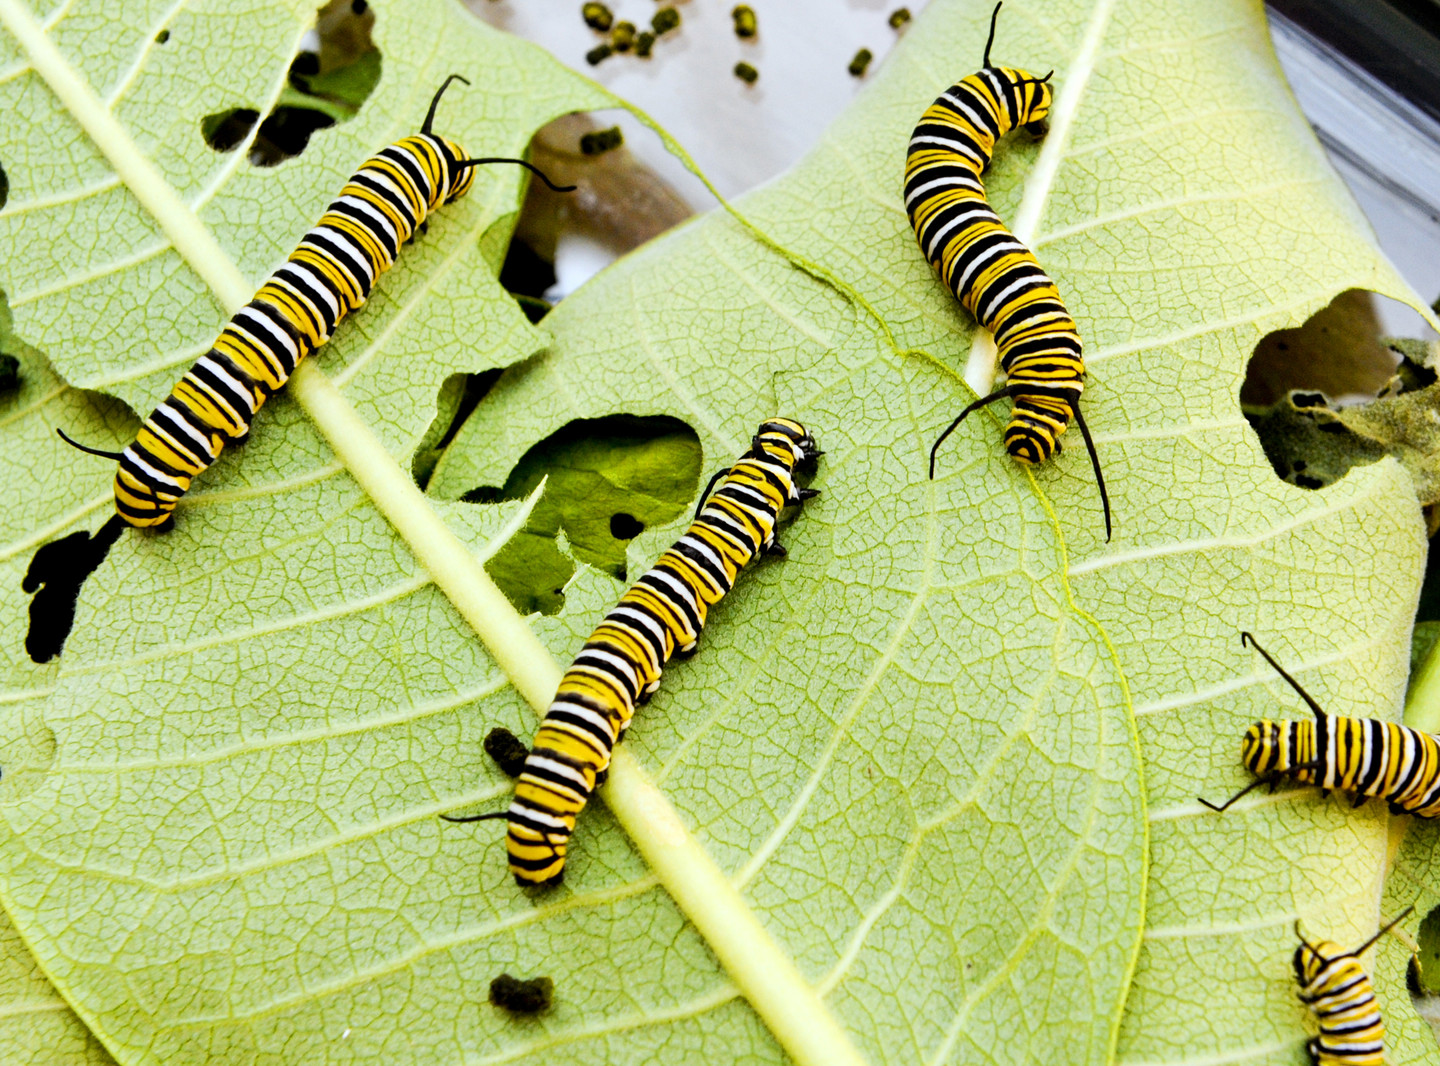 Scarce Food Turns Monarch Butterfly Caterpillars Into Monsters